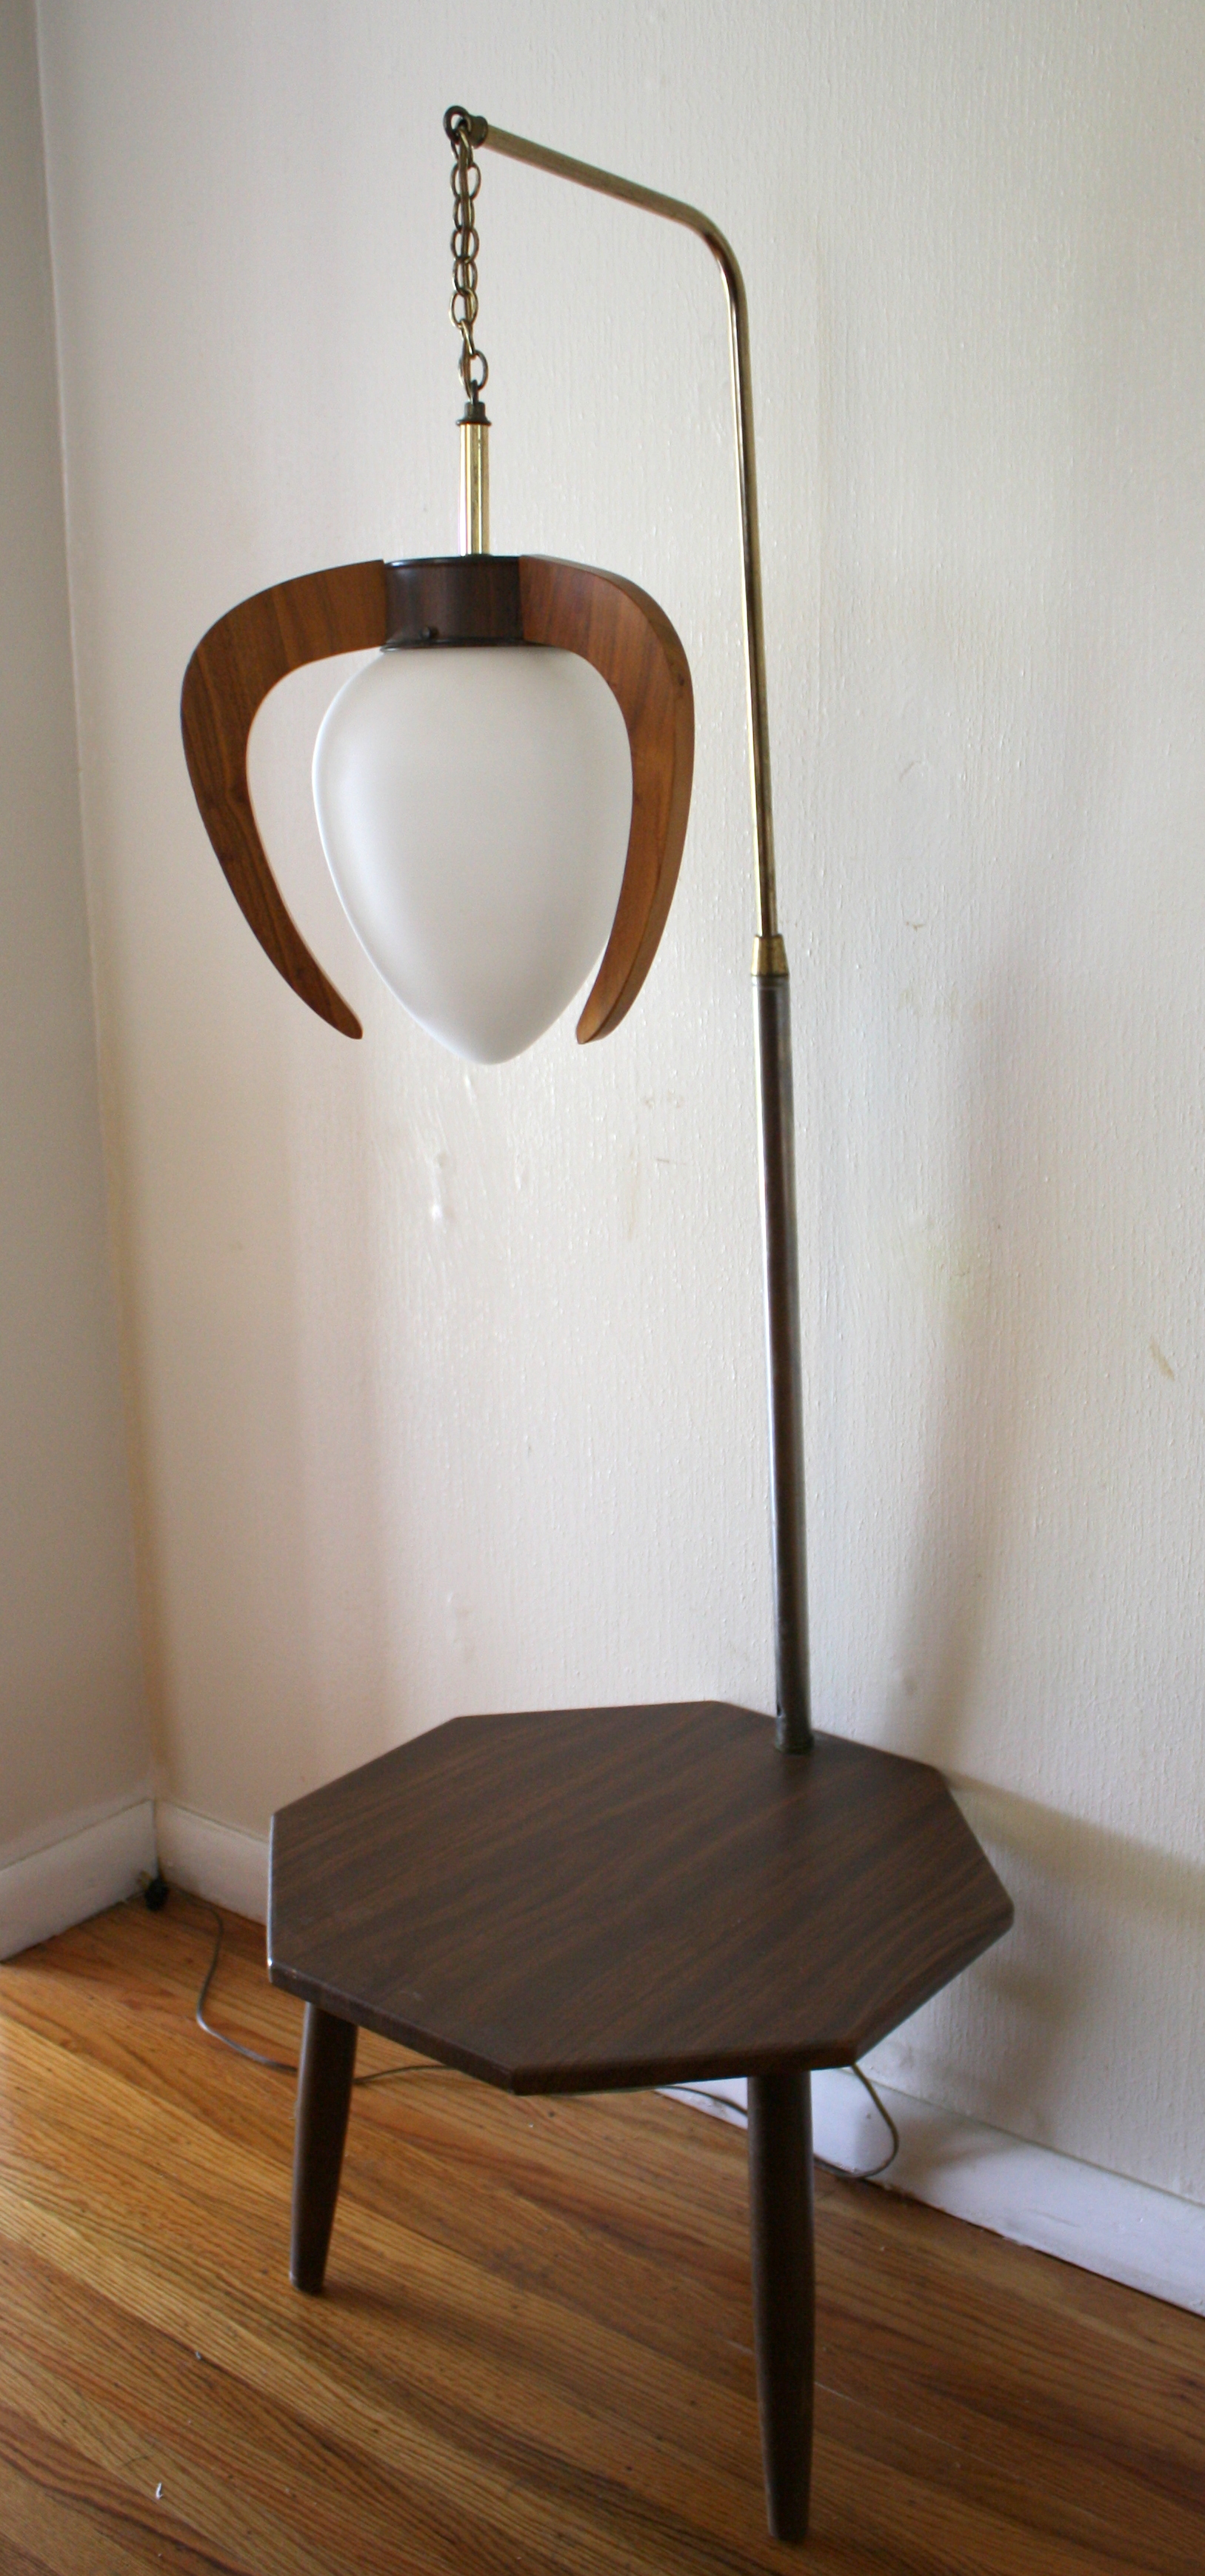 Contemporary Lamp Tables Mid Century Modern Pendant Lamp Table Combination Picked